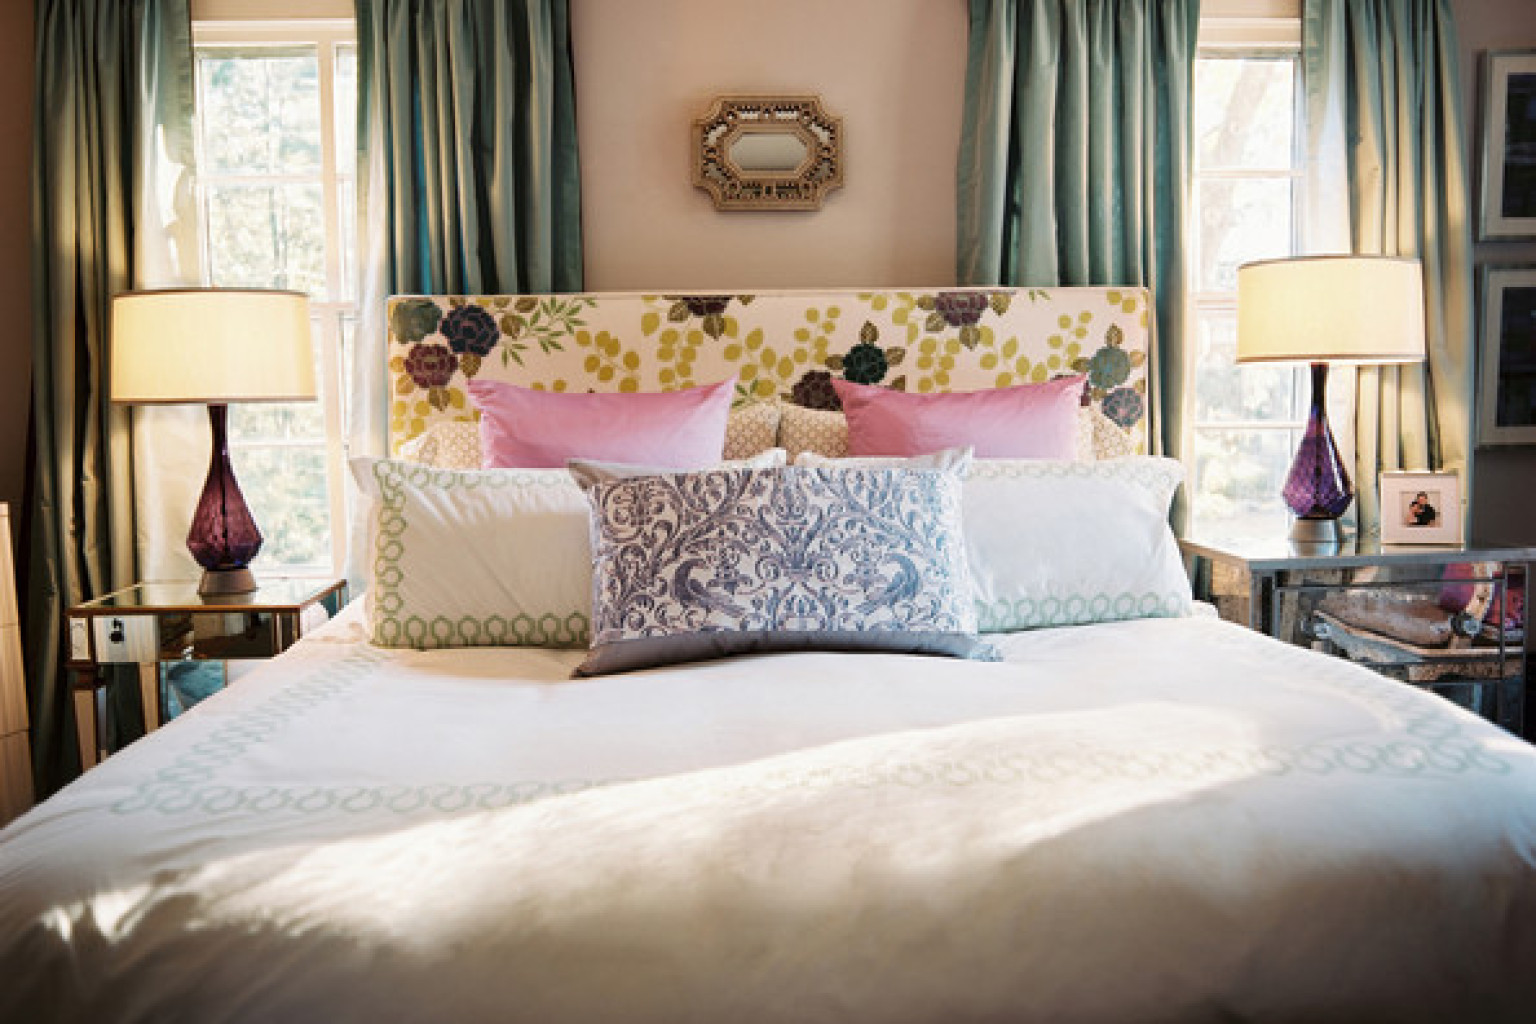 8 romantic bedroom ideas from lonny that will totally get Romantic bedrooms com